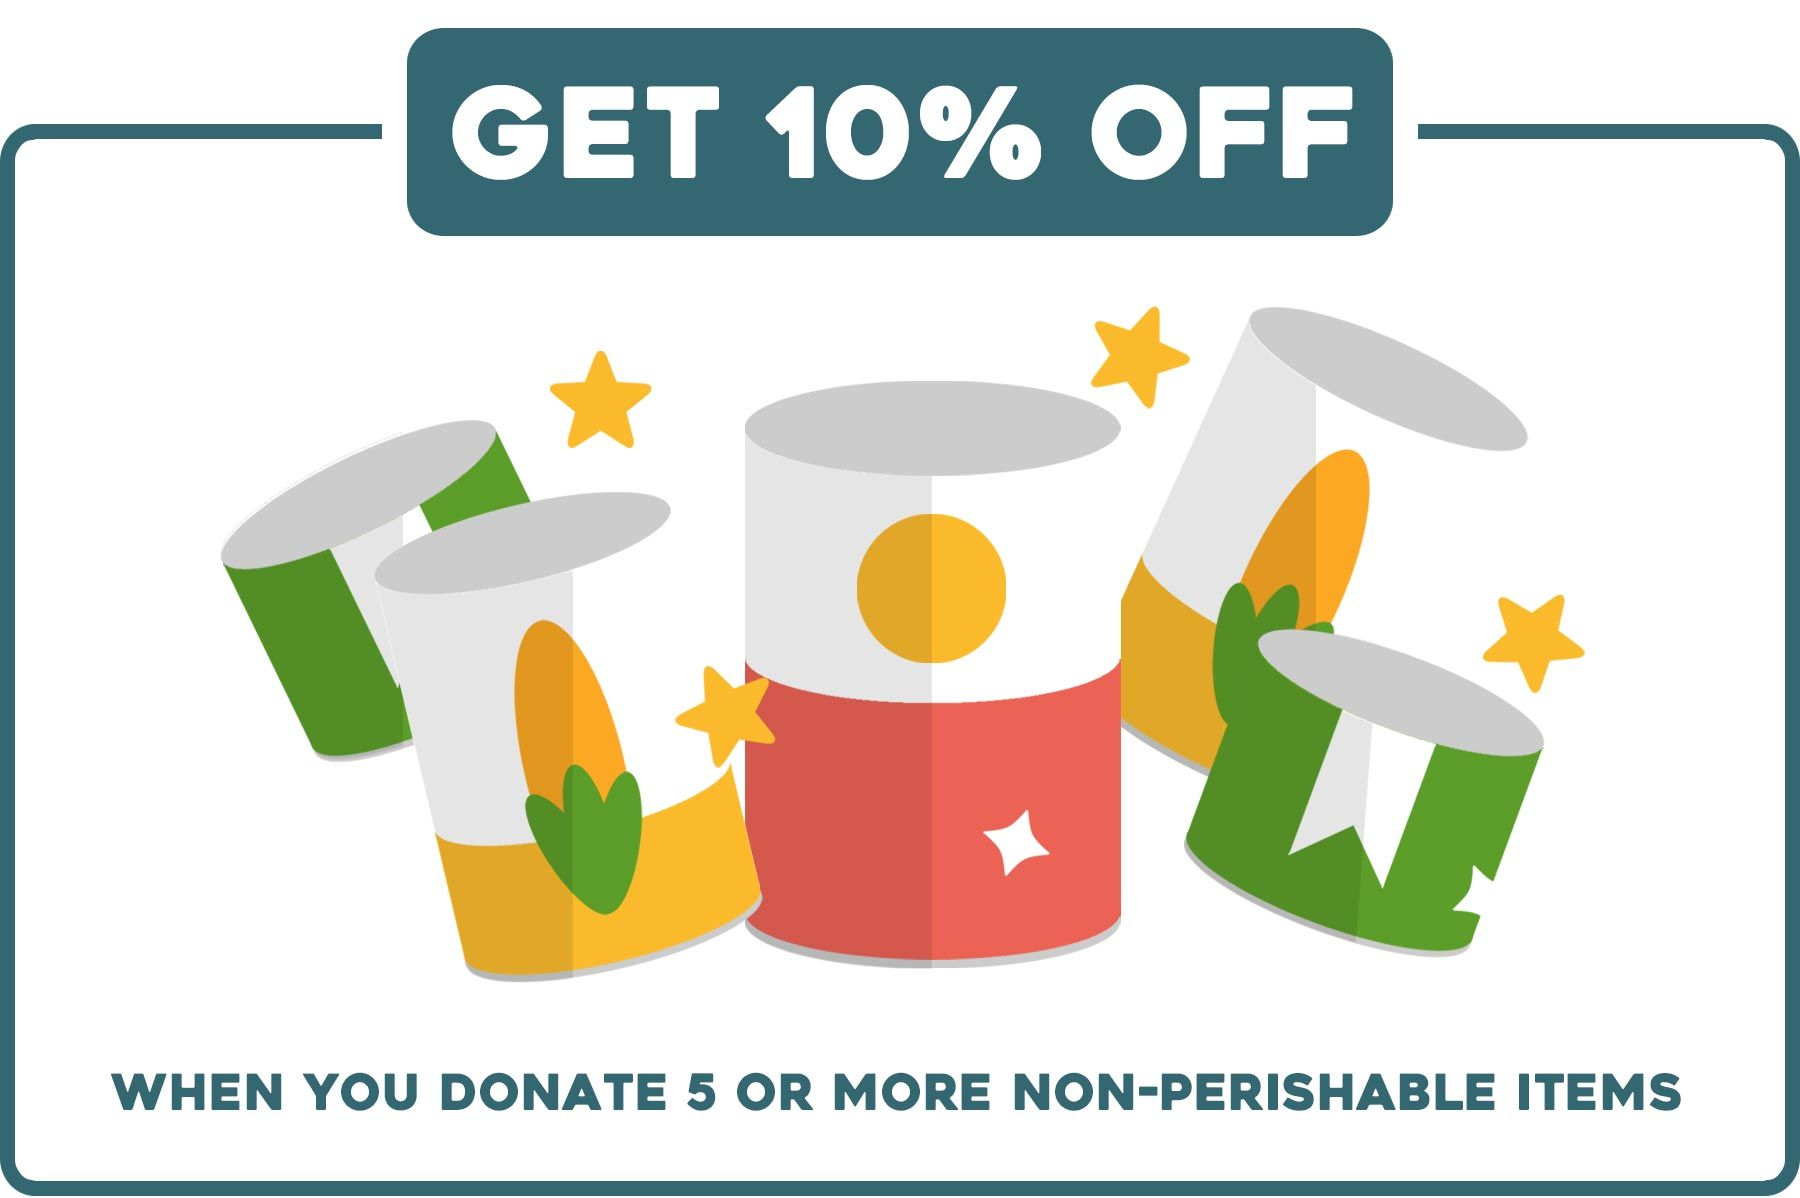 Donate 5+ non-perishable items and get 10% off a purchase in our stores!